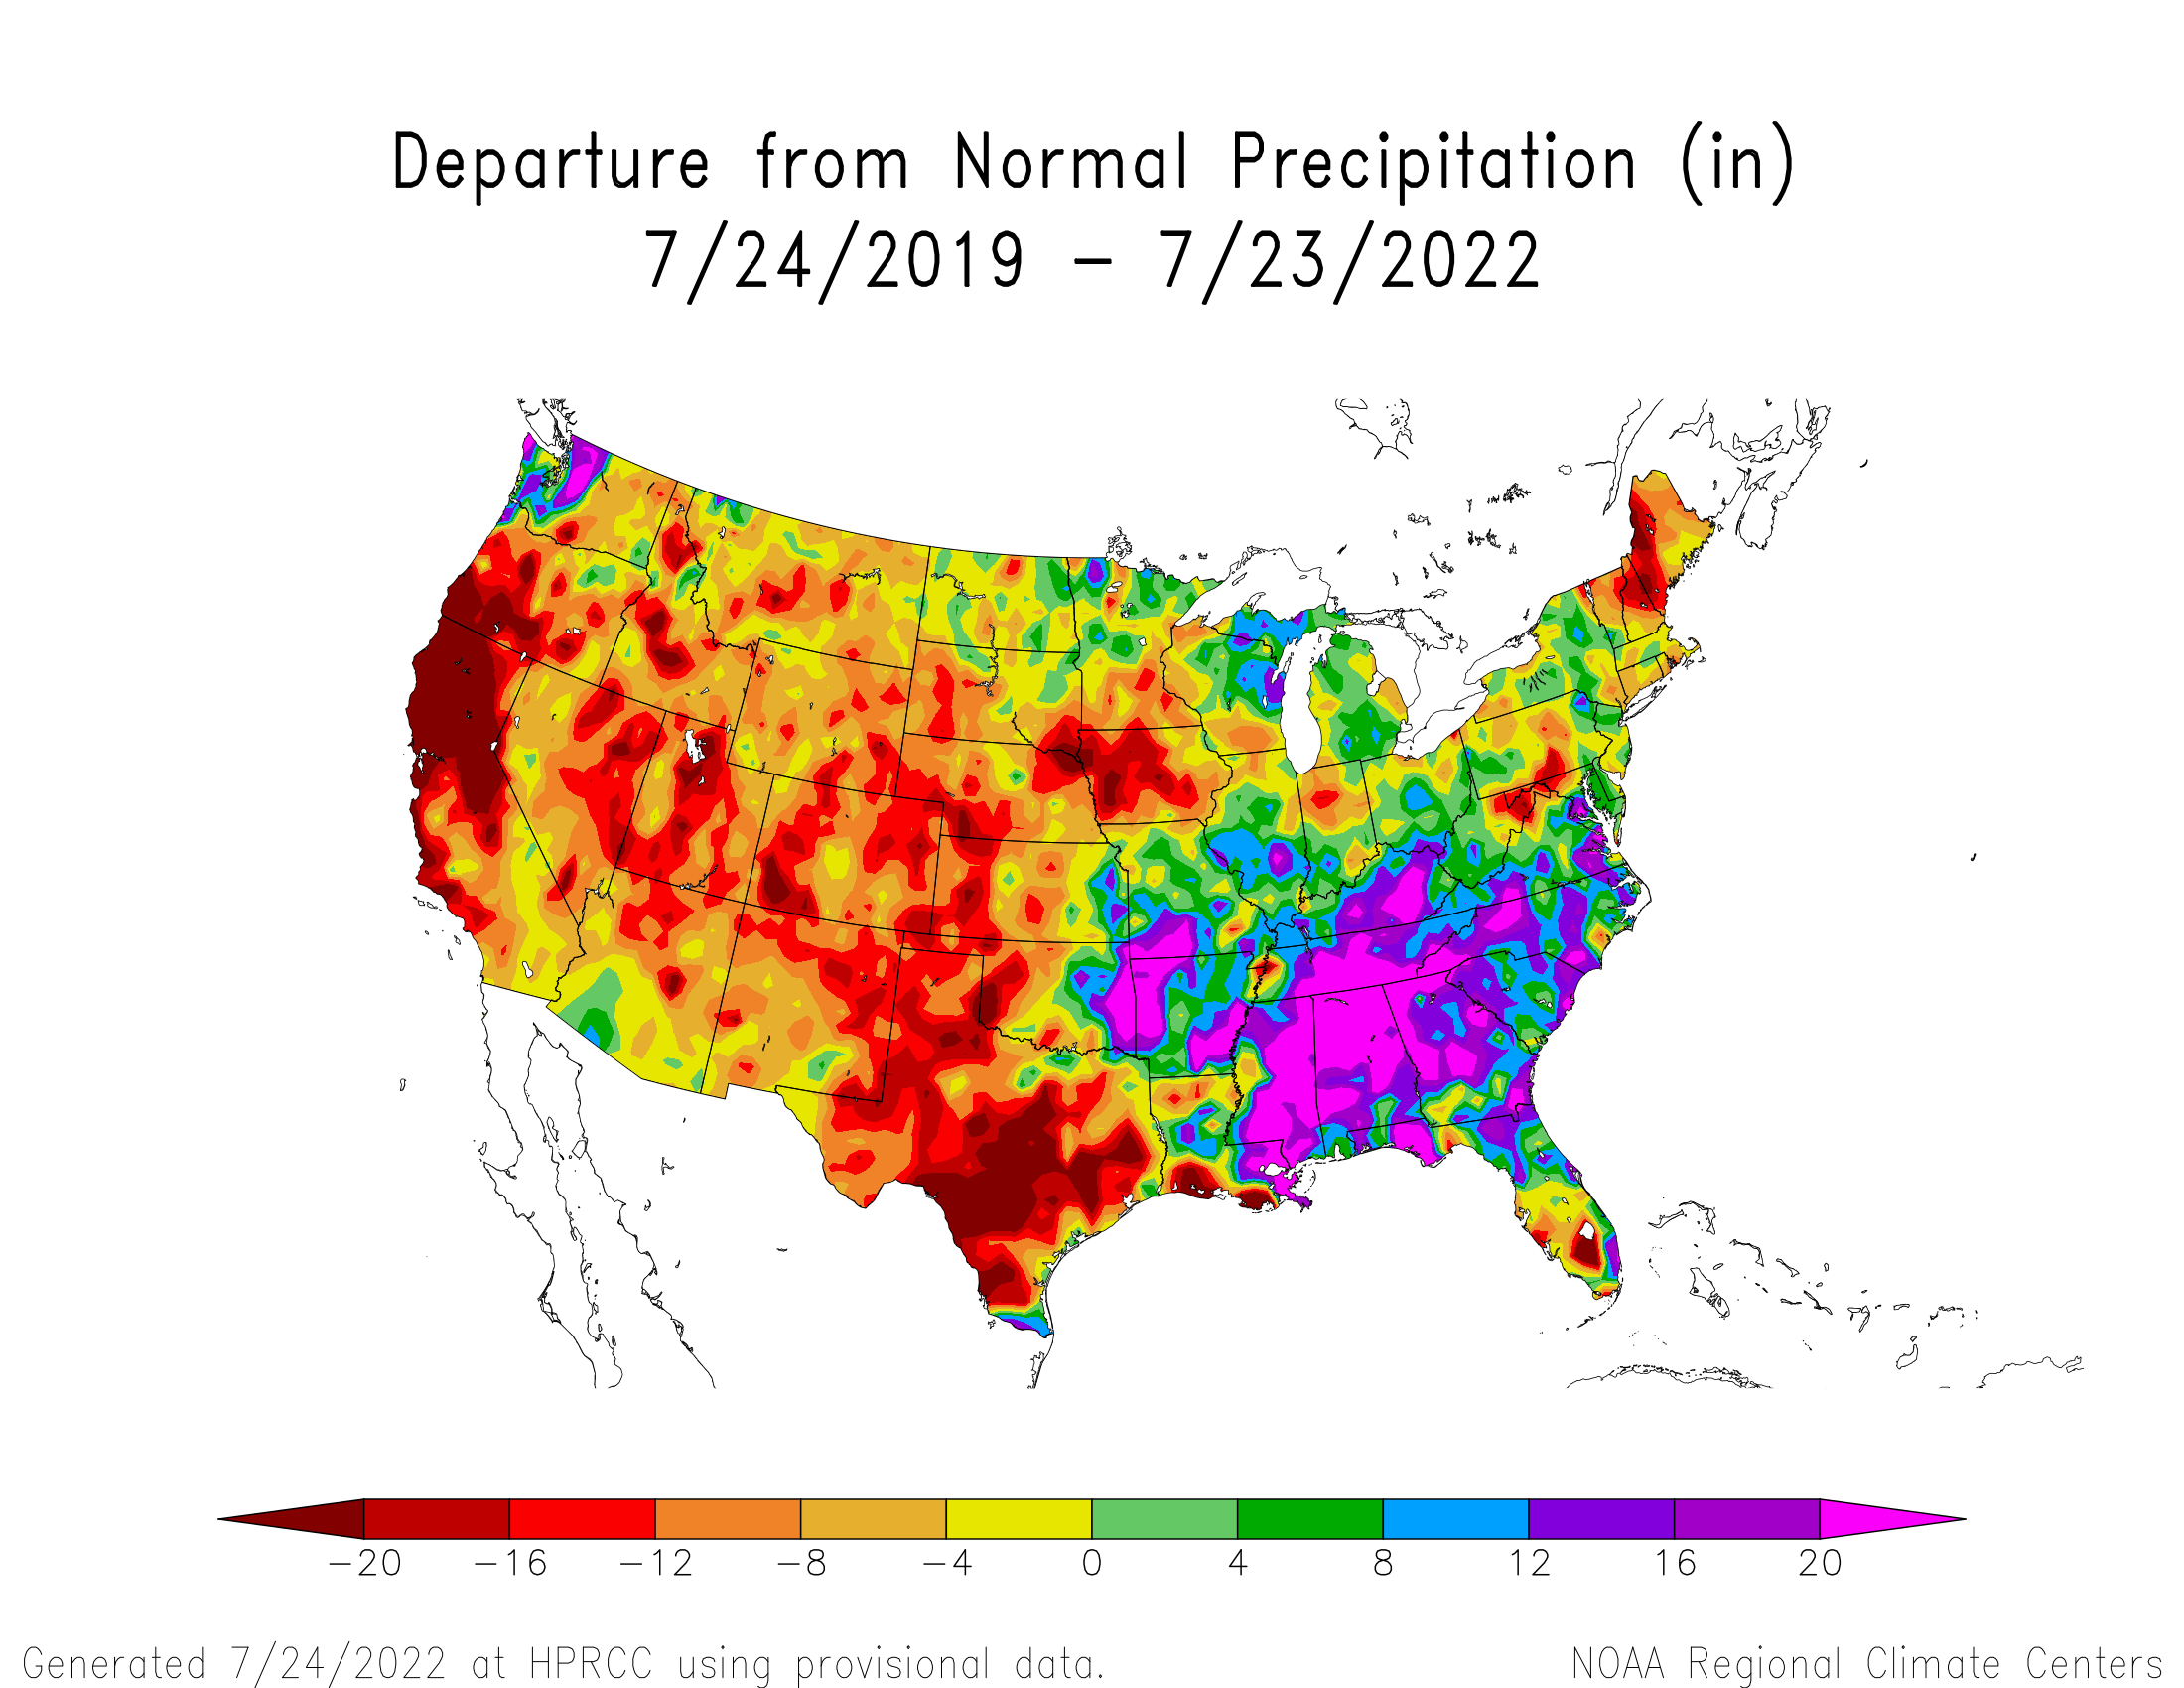 3-year Precipitation Departure from Normal